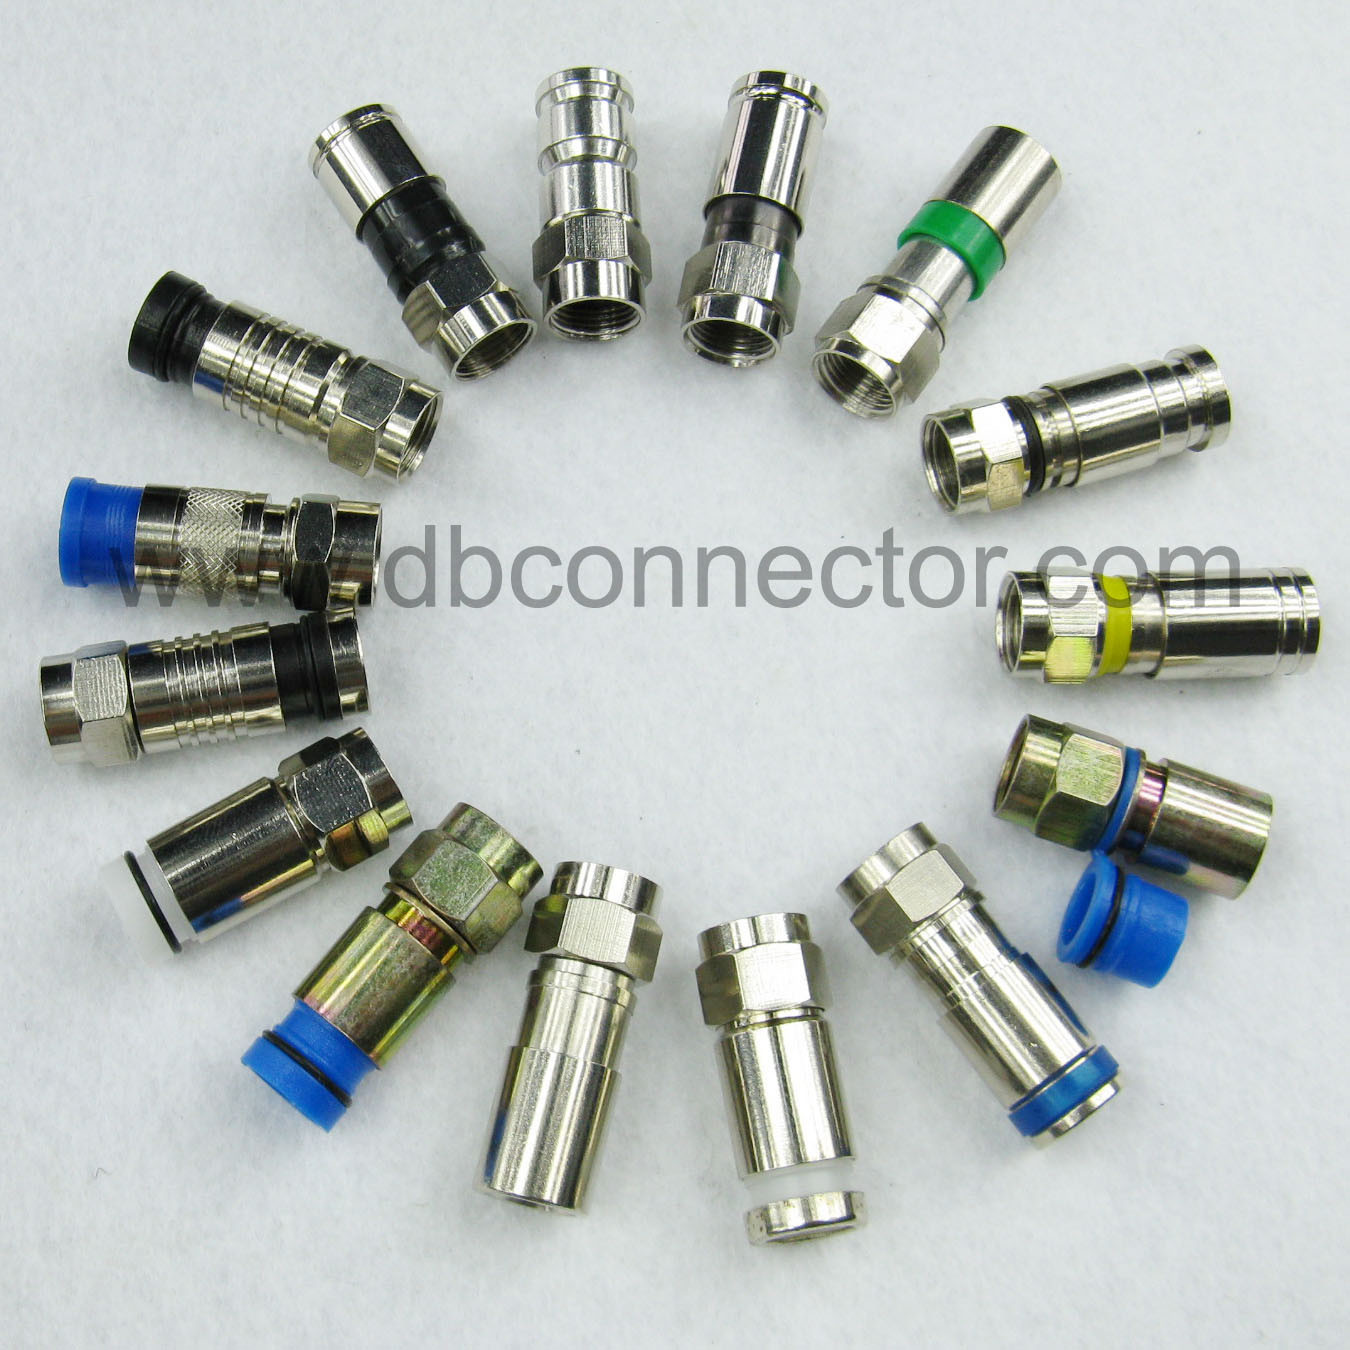 Coaxial Cable Connectors Types : Rf connector types wiki